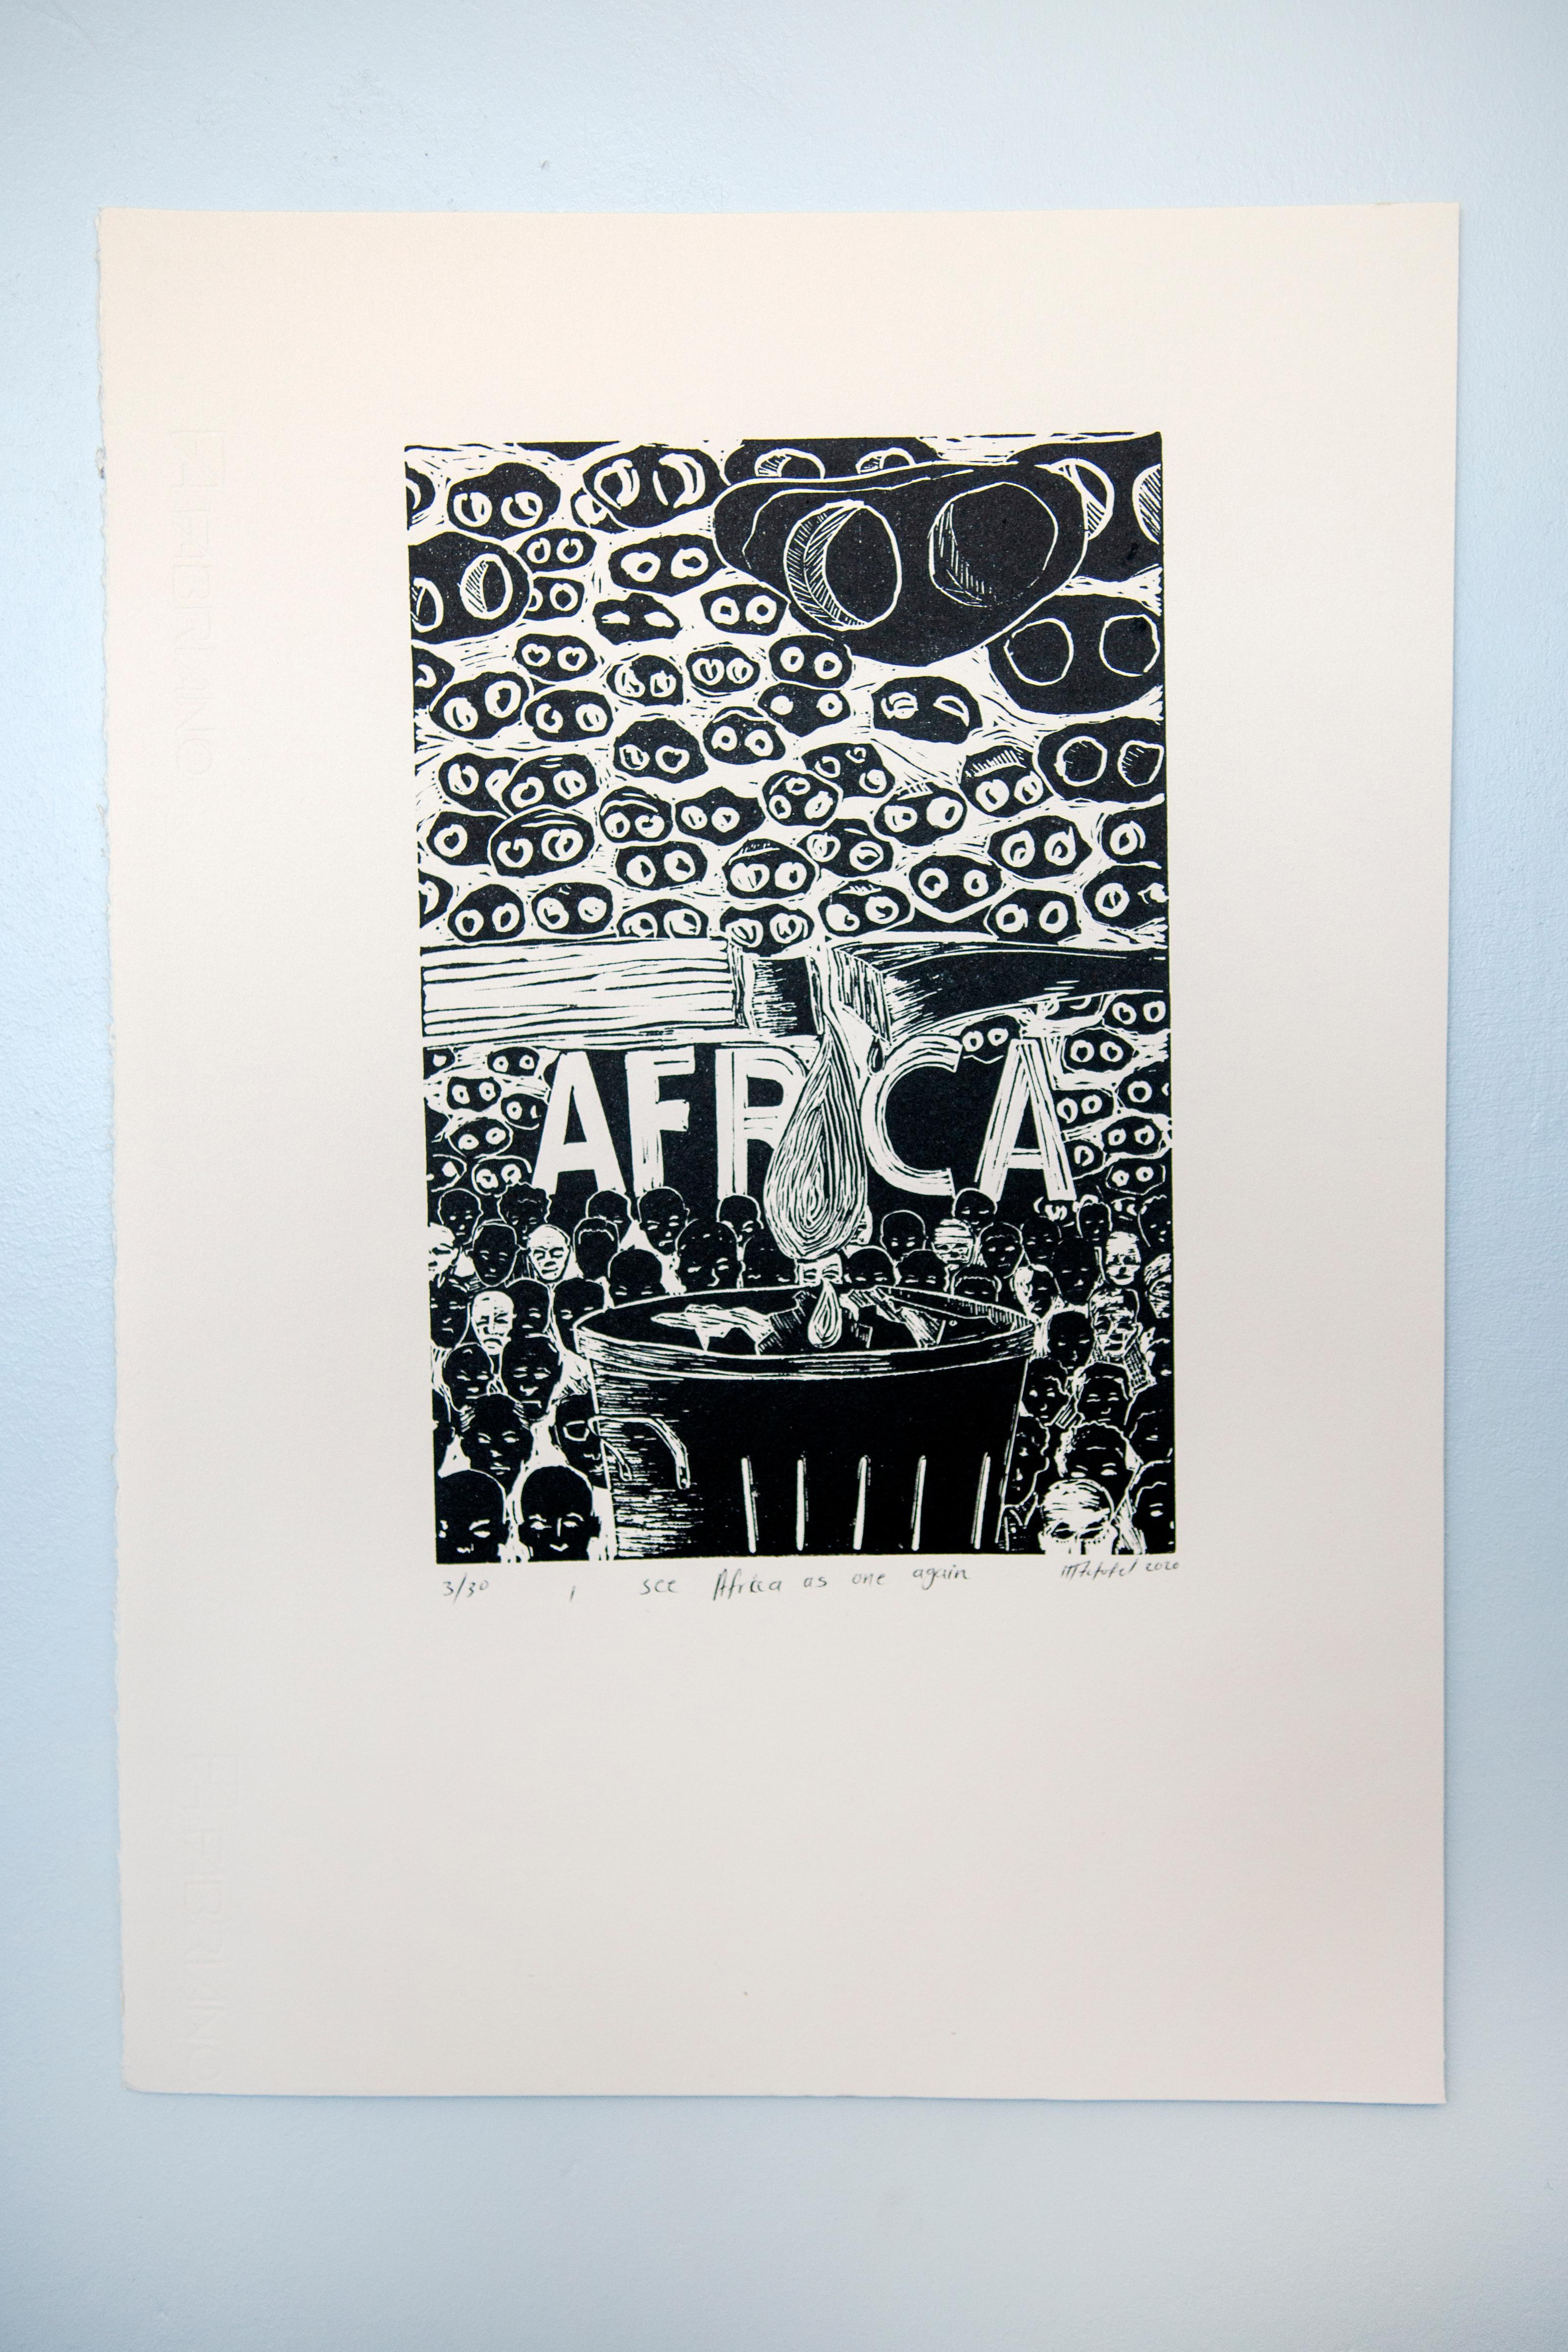 I see Africa as one again. Linoleum block print on ivory rosaspina fabriano